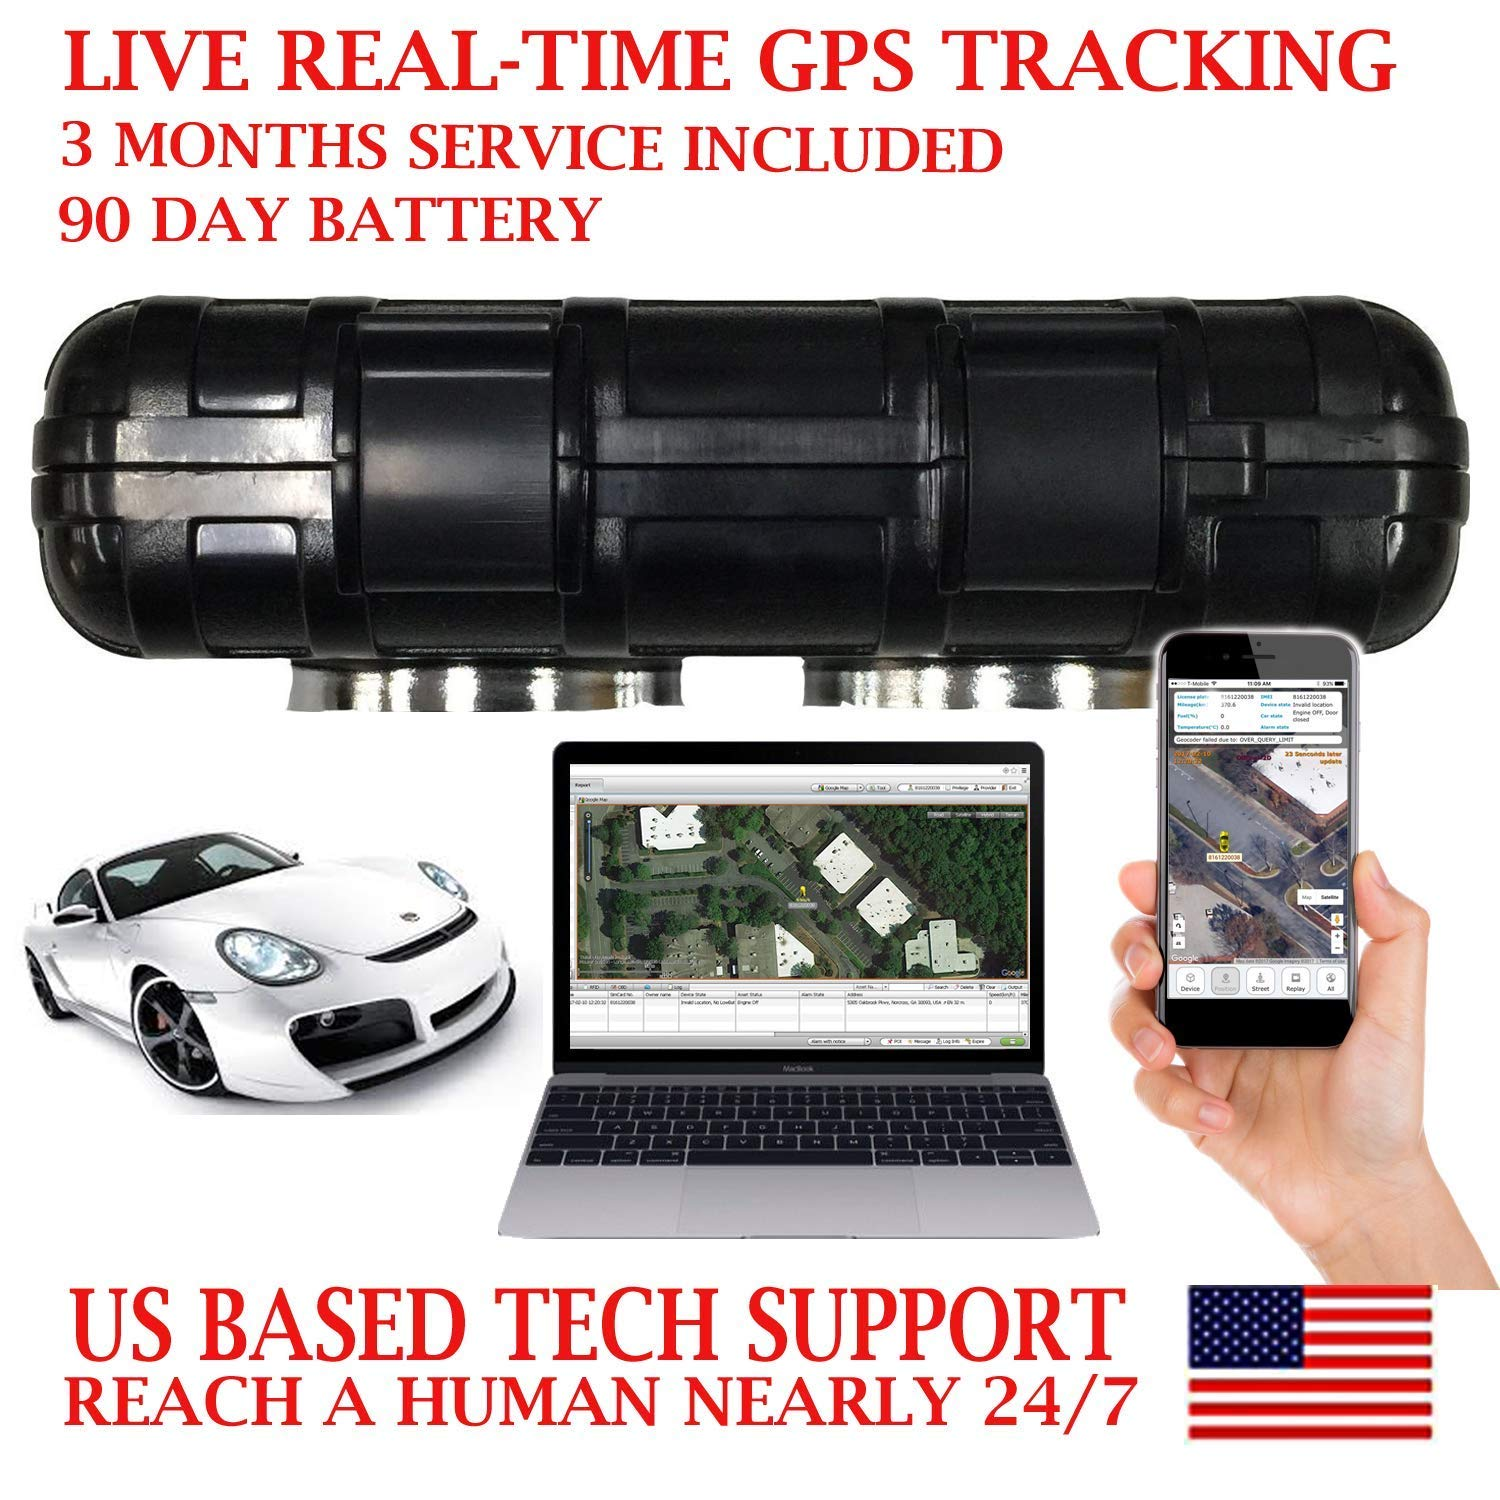 AES RGT90 GPS Tracker SMS Locator Mini Portable Vehicle Locating Tracking  Device with Waterproof Magnetic Case works up to 90 days on a single charge